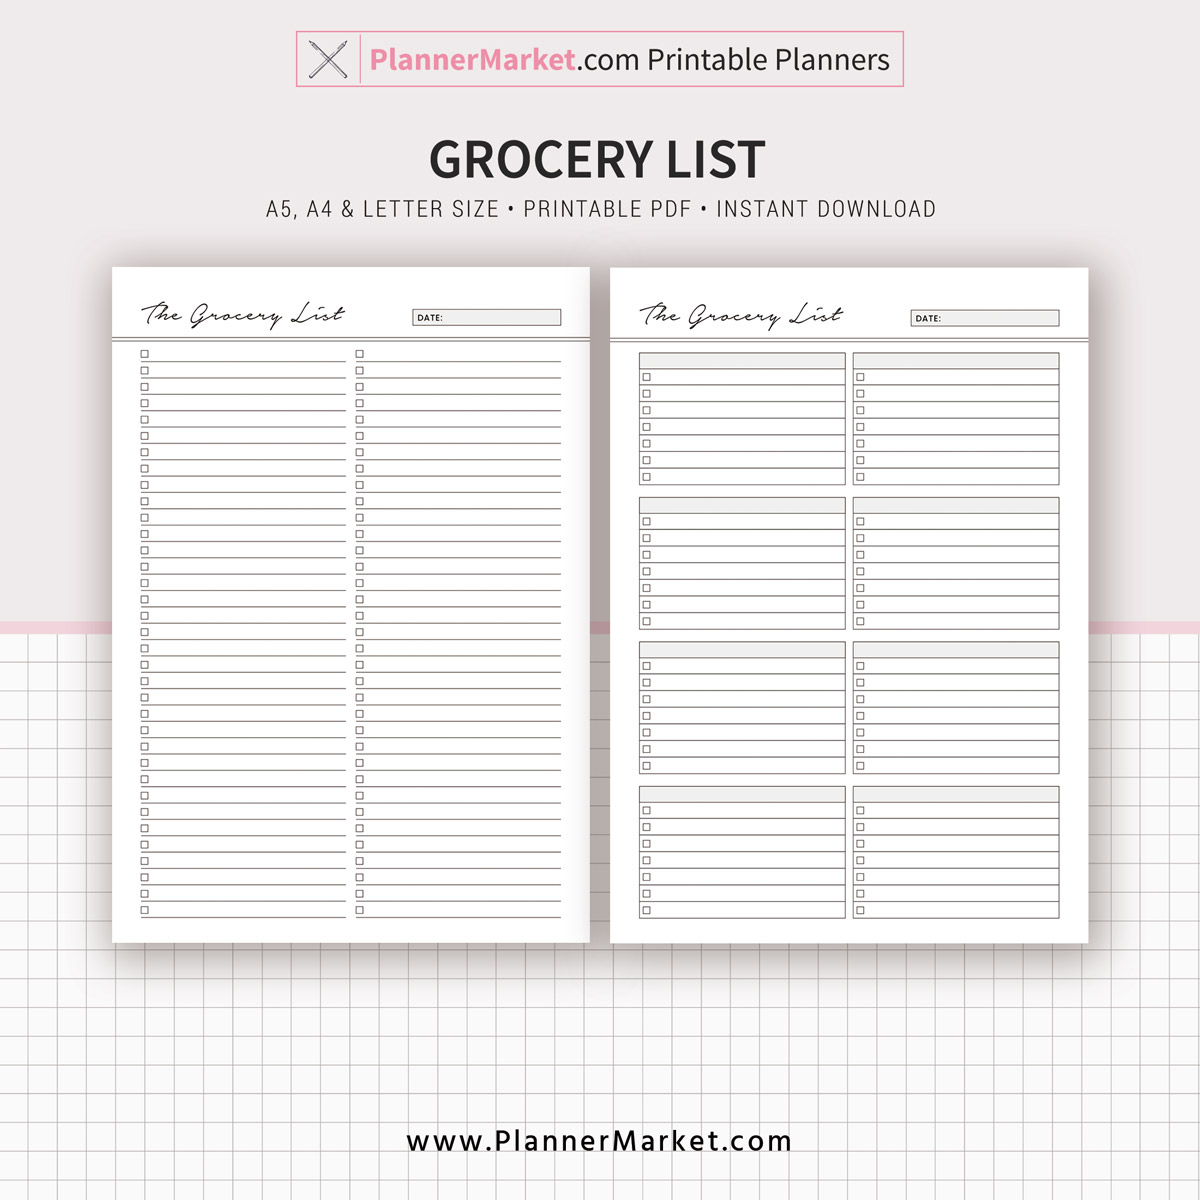 meal planner 2019 menu planner grocery list a5 a4 letter size